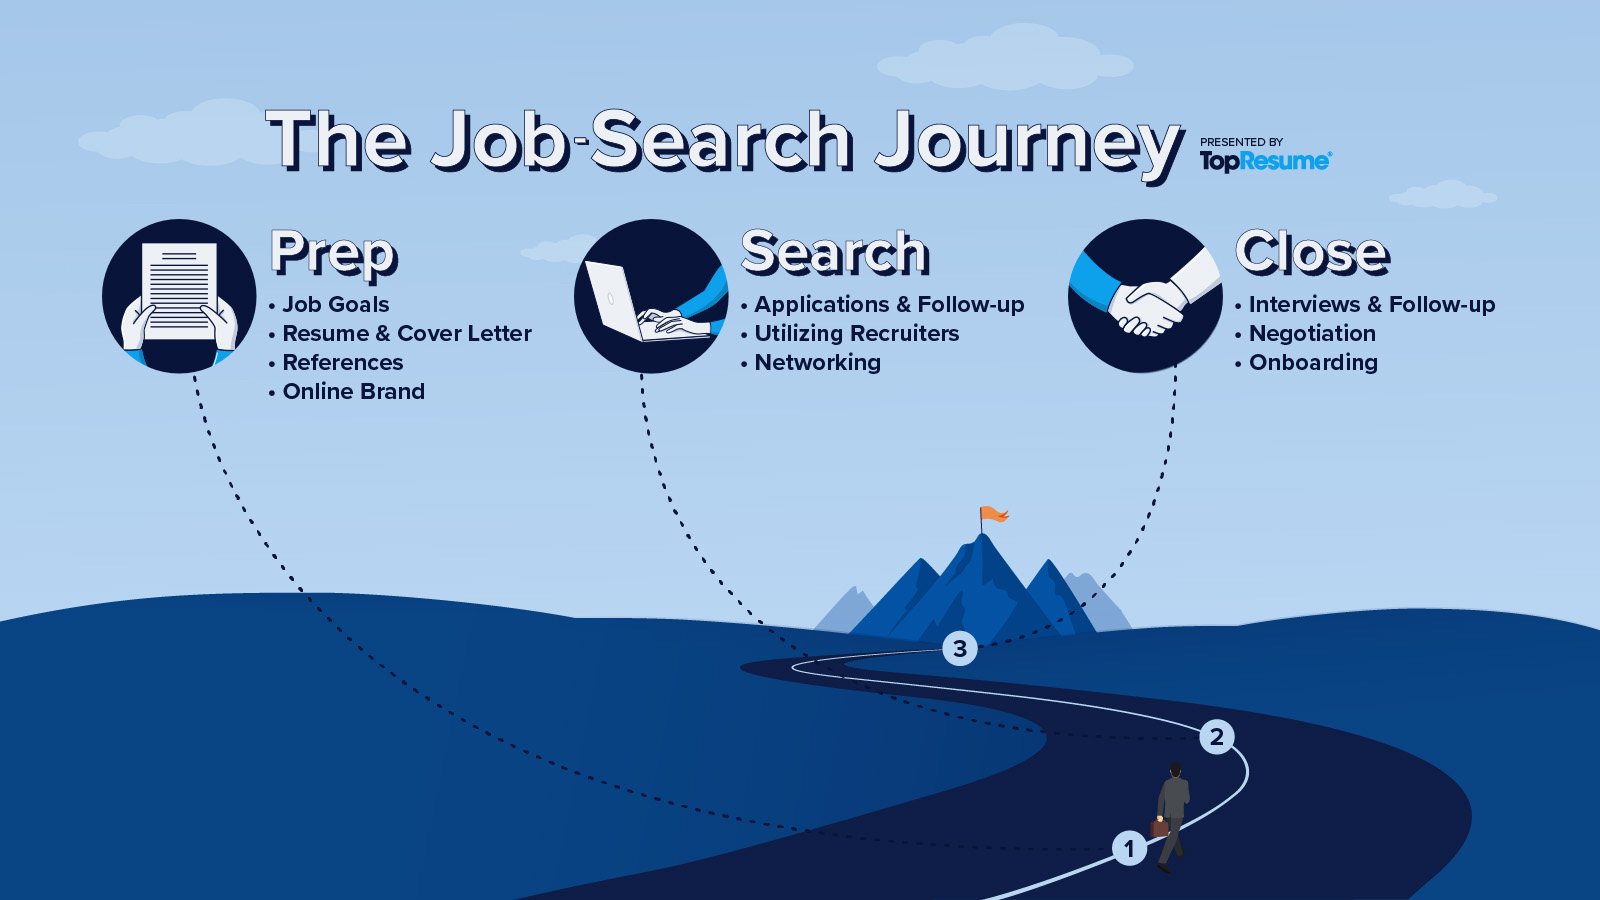 Infographic: Breaking down the job search into 3 easy steps — prep, search, and close.